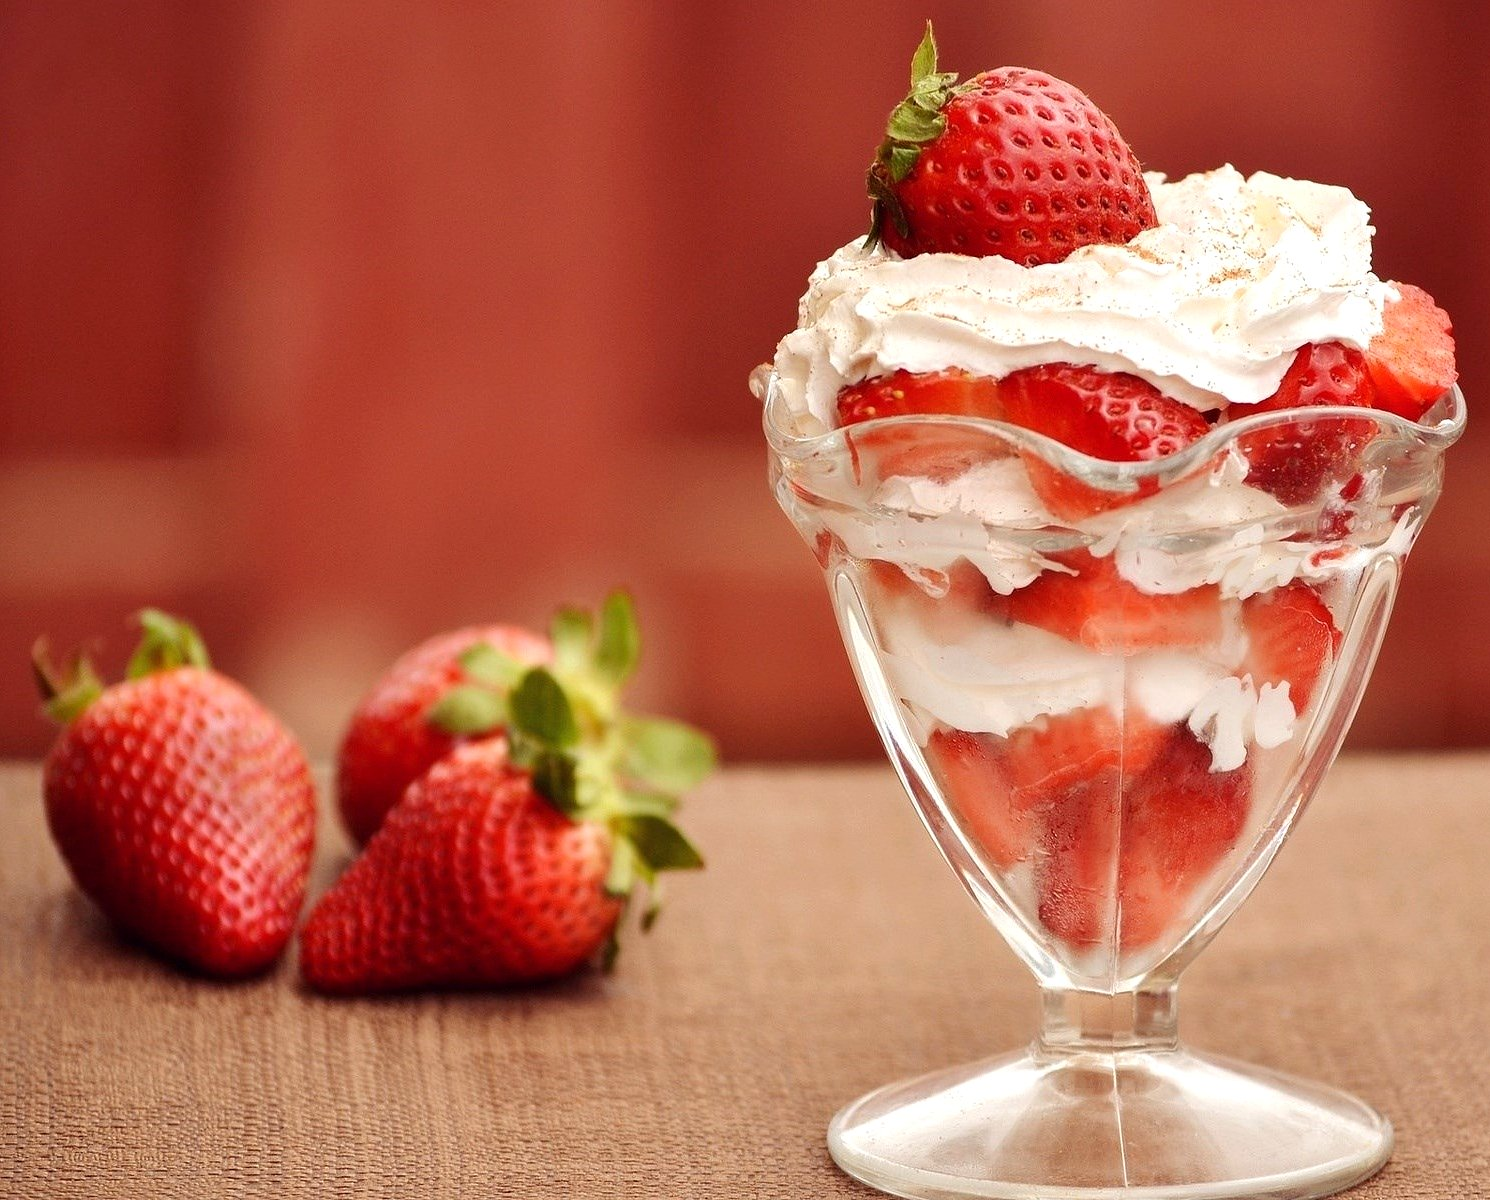 Strawberries and Cream Google image http://cookdiary.net/wp-content/uploads/images/Strawberries-and-Cream_12310.jpg